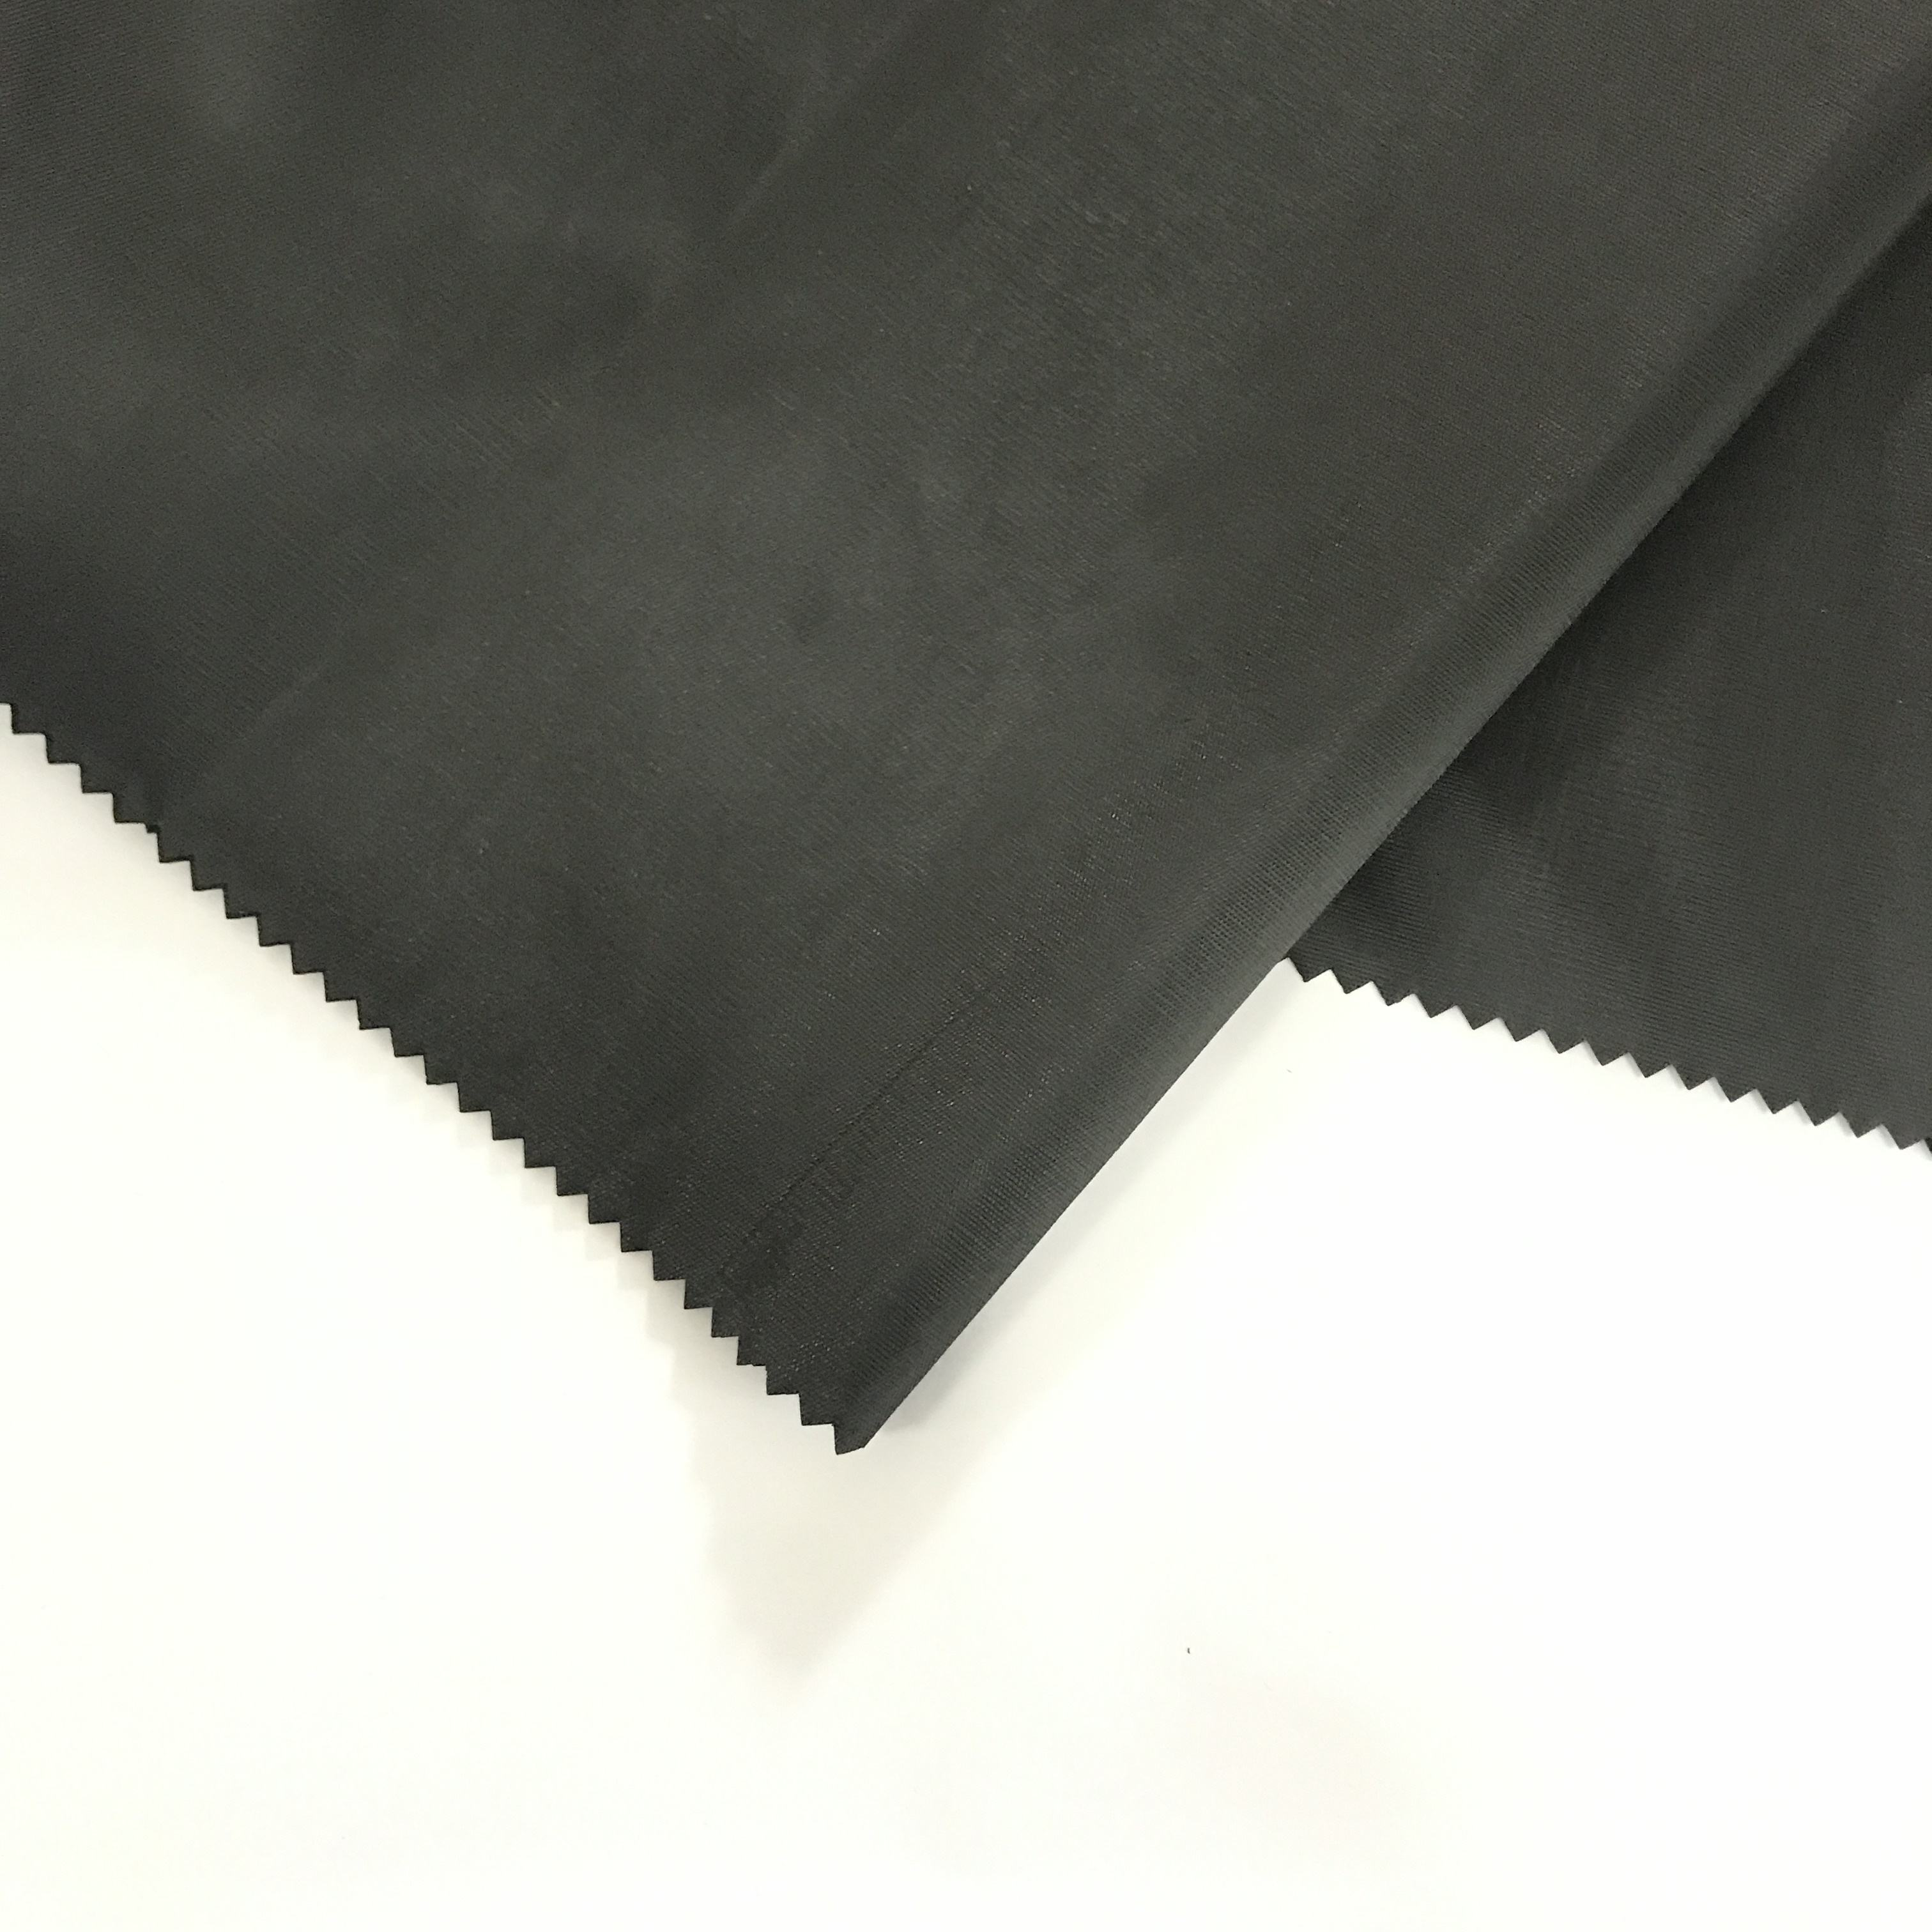 "170T Polyester Peacock Taffeta Lining PA Coated Fabric 68"" 8kg Cheap Pongi Taffeta For Bag Lining"